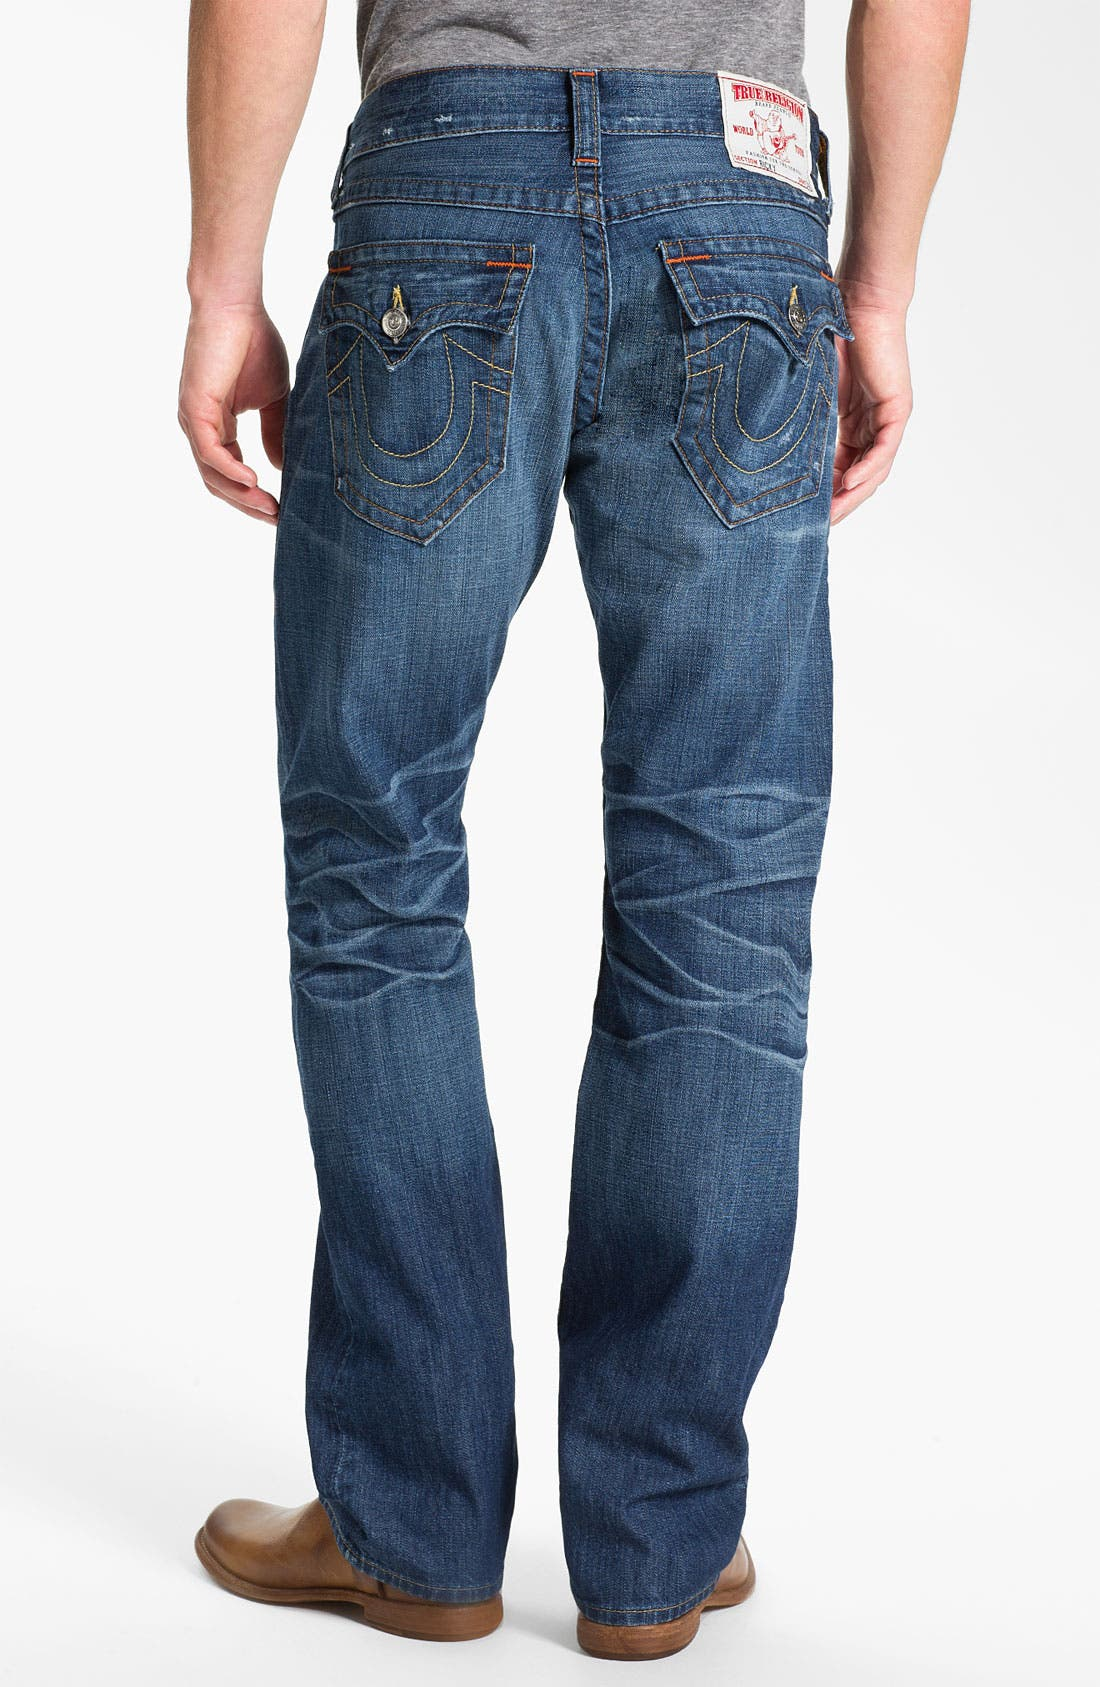 Alternate Image 1 Selected - True Religion Brand Jeans 'Ricky' Straight Leg Jeans (Pioneer)